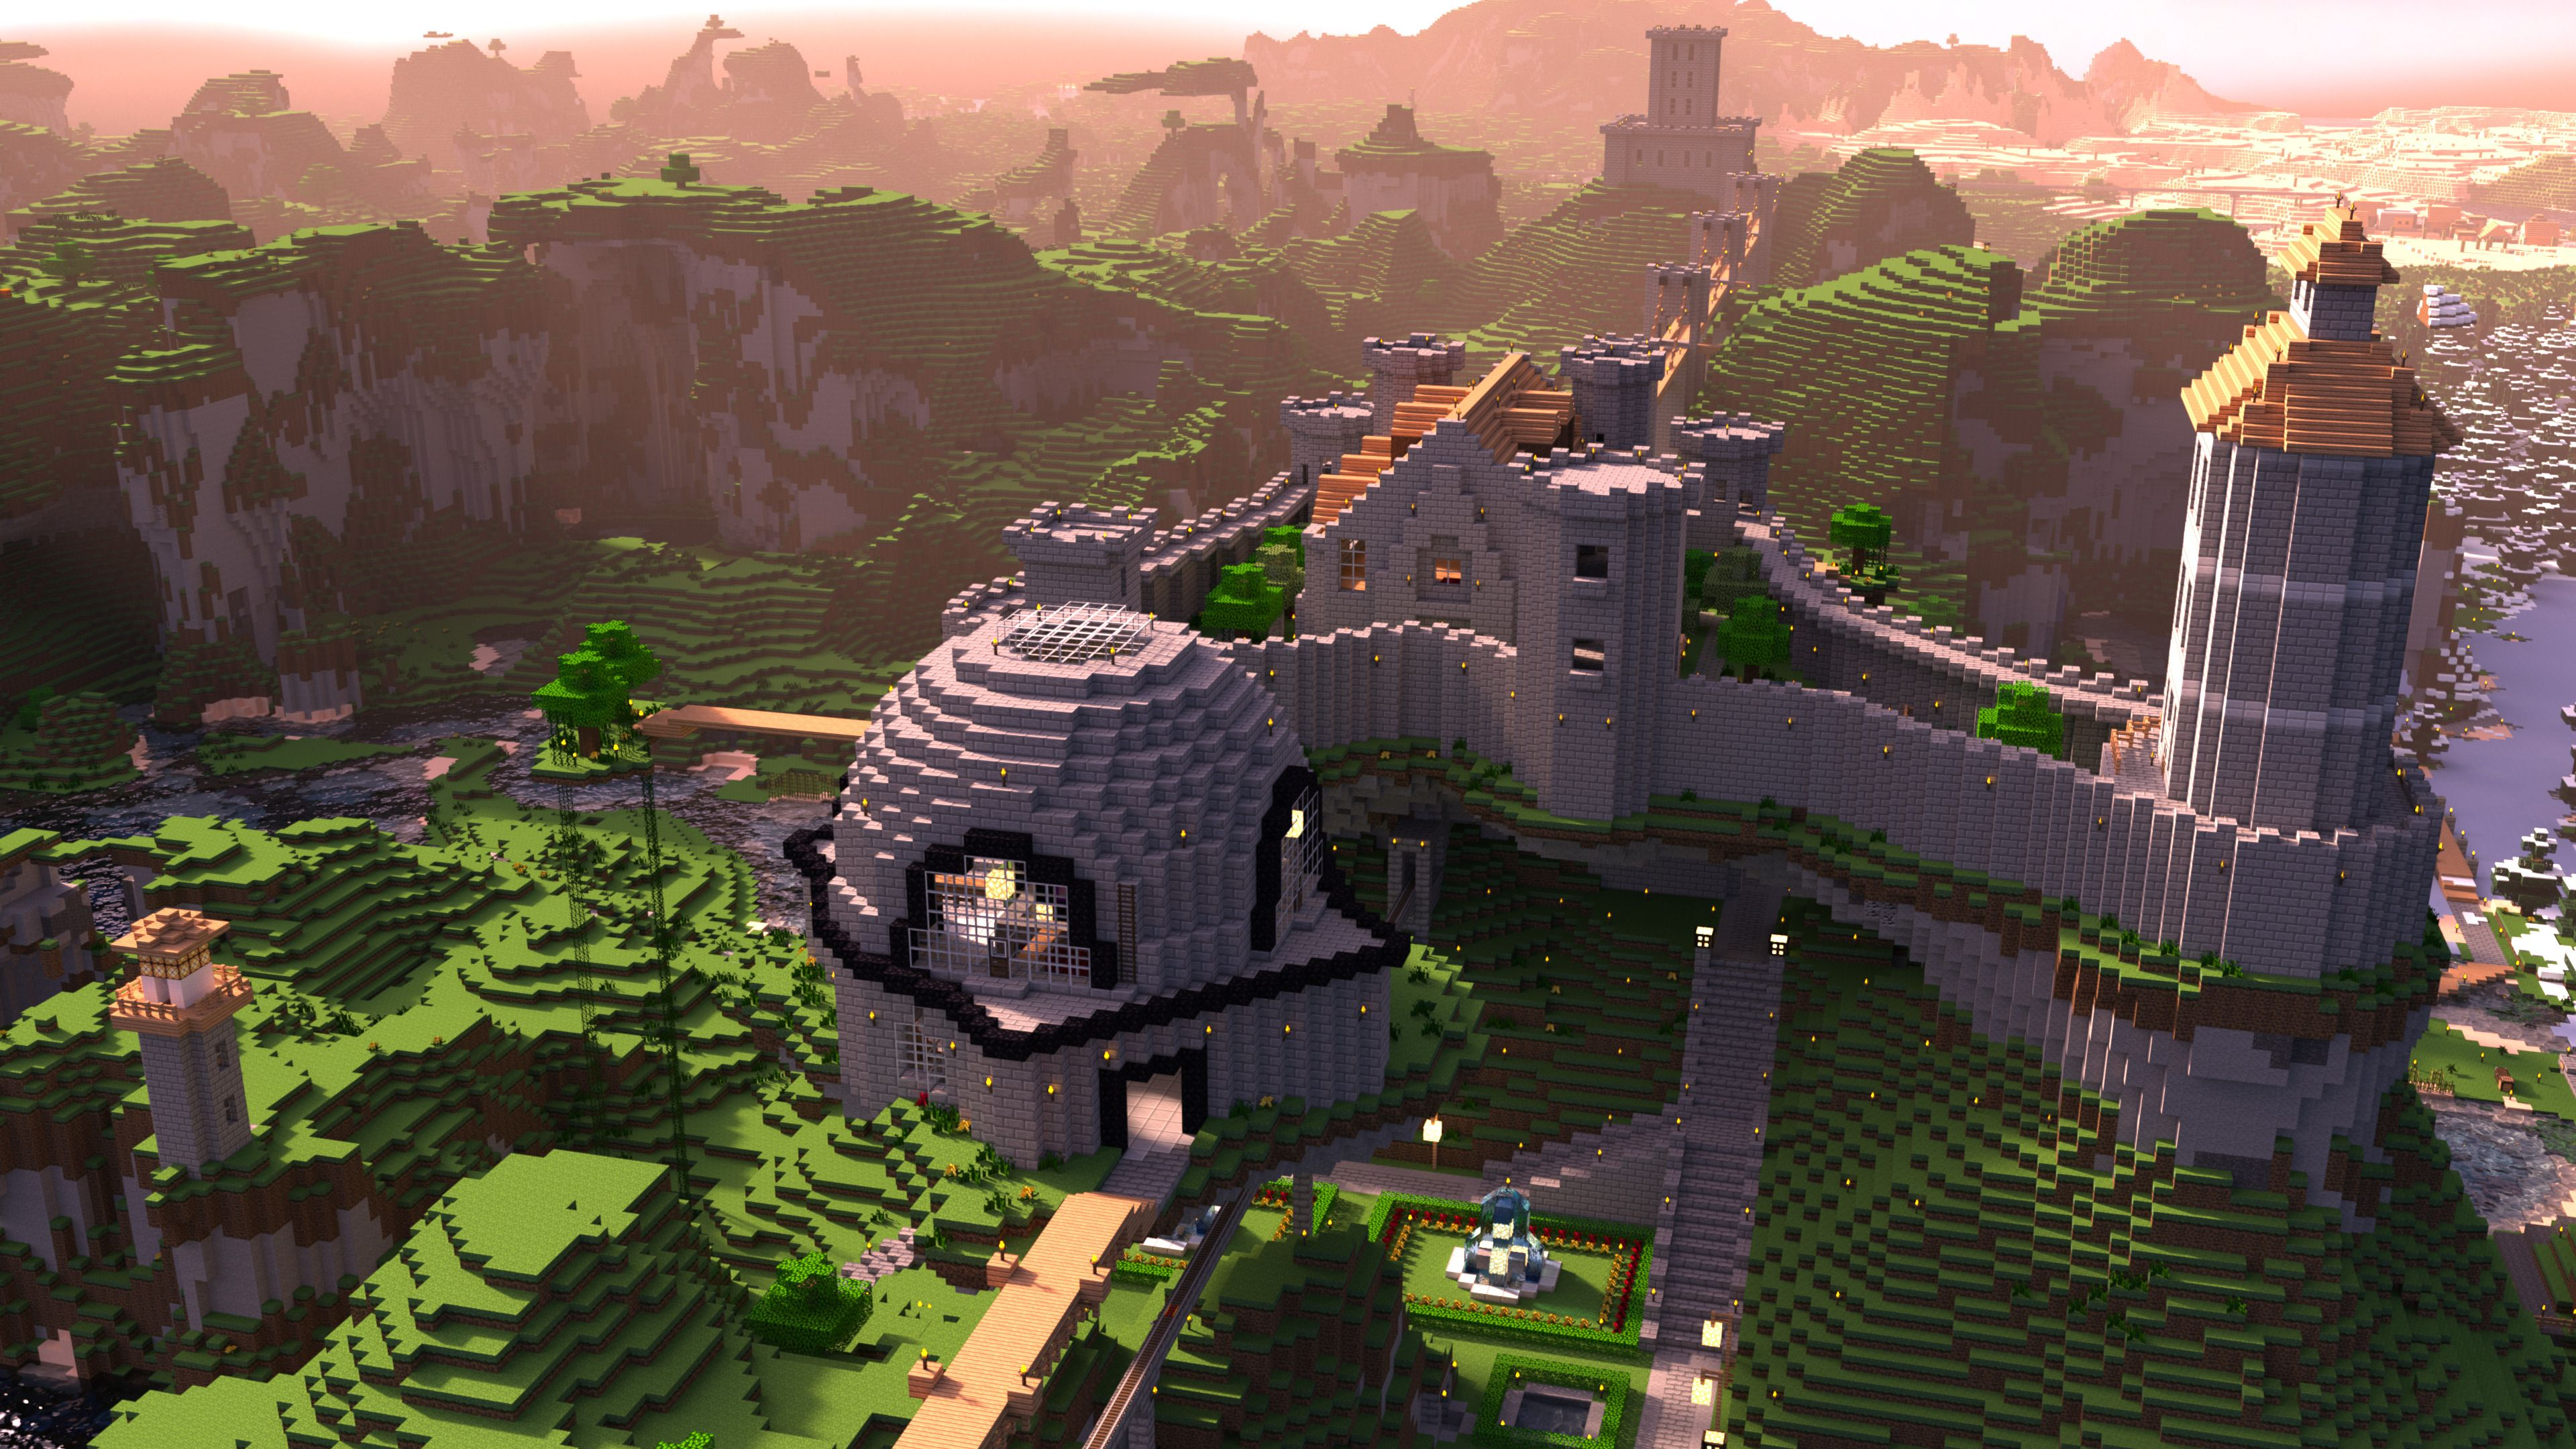 Download Wallpaper Minecraft Google - 46585dce46c42b514df1dc689e1ab278  Perfect Image Reference_1004355.jpg